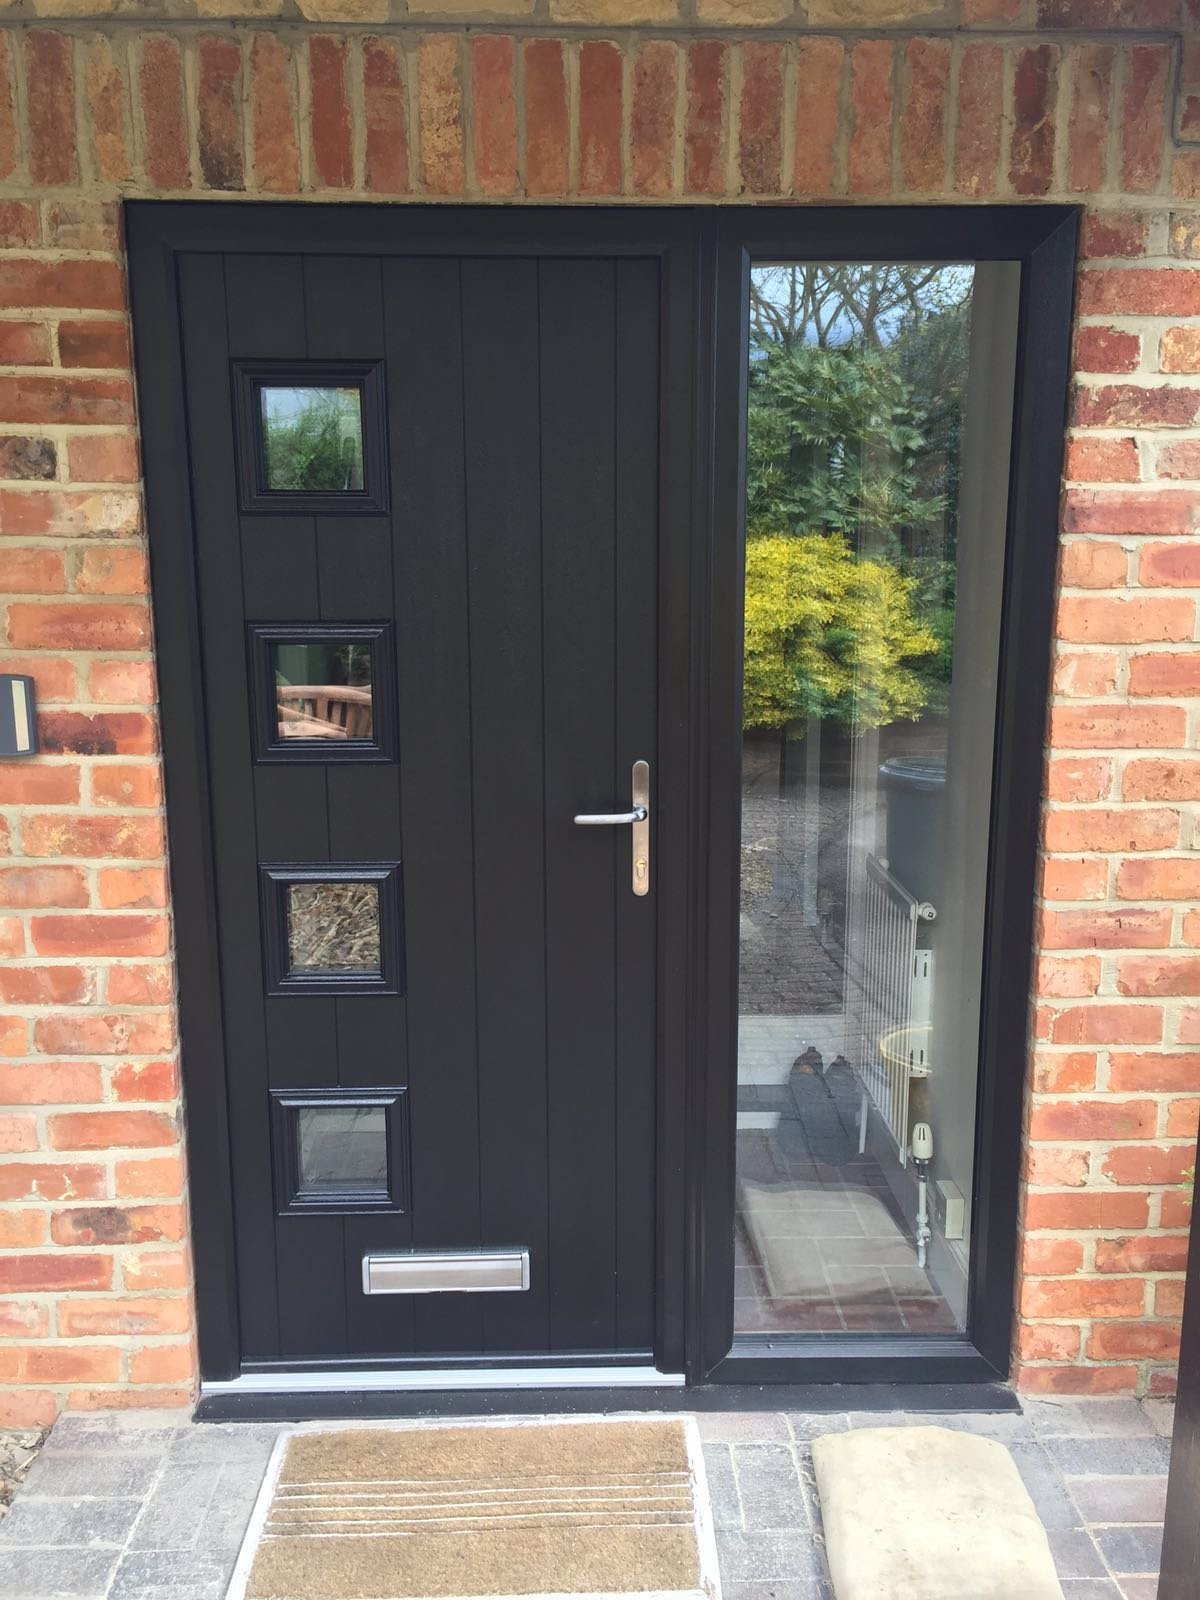 Solidor Composite Door Installation In Windows Ltd